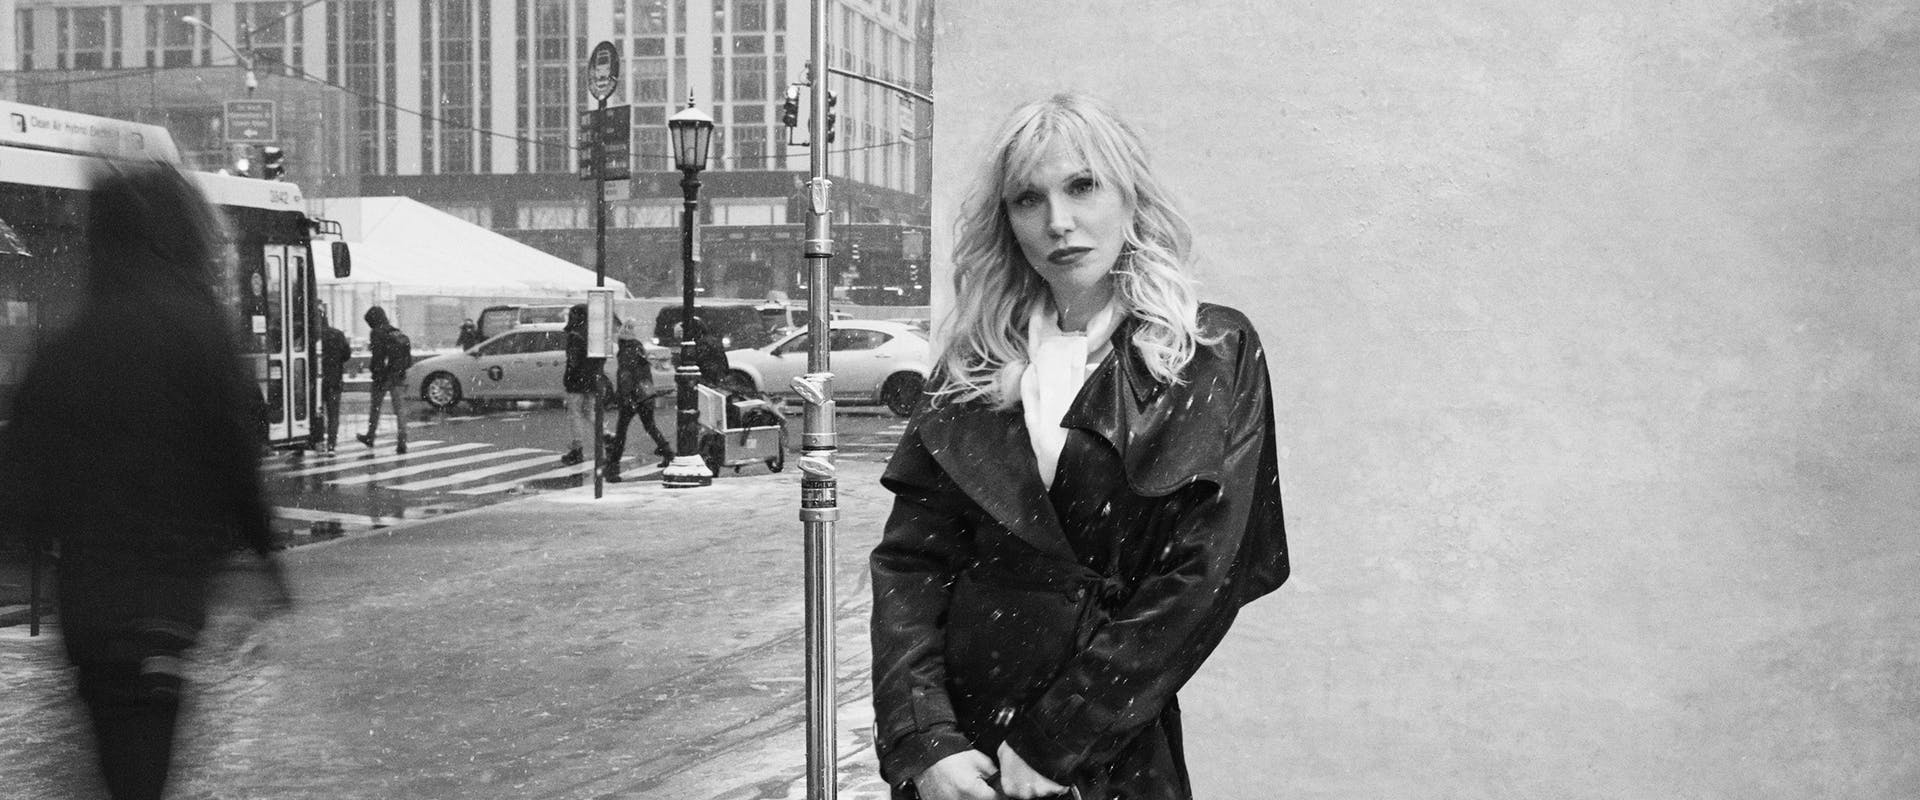 DELVAUX - Courtney Love for 'New York Stories'